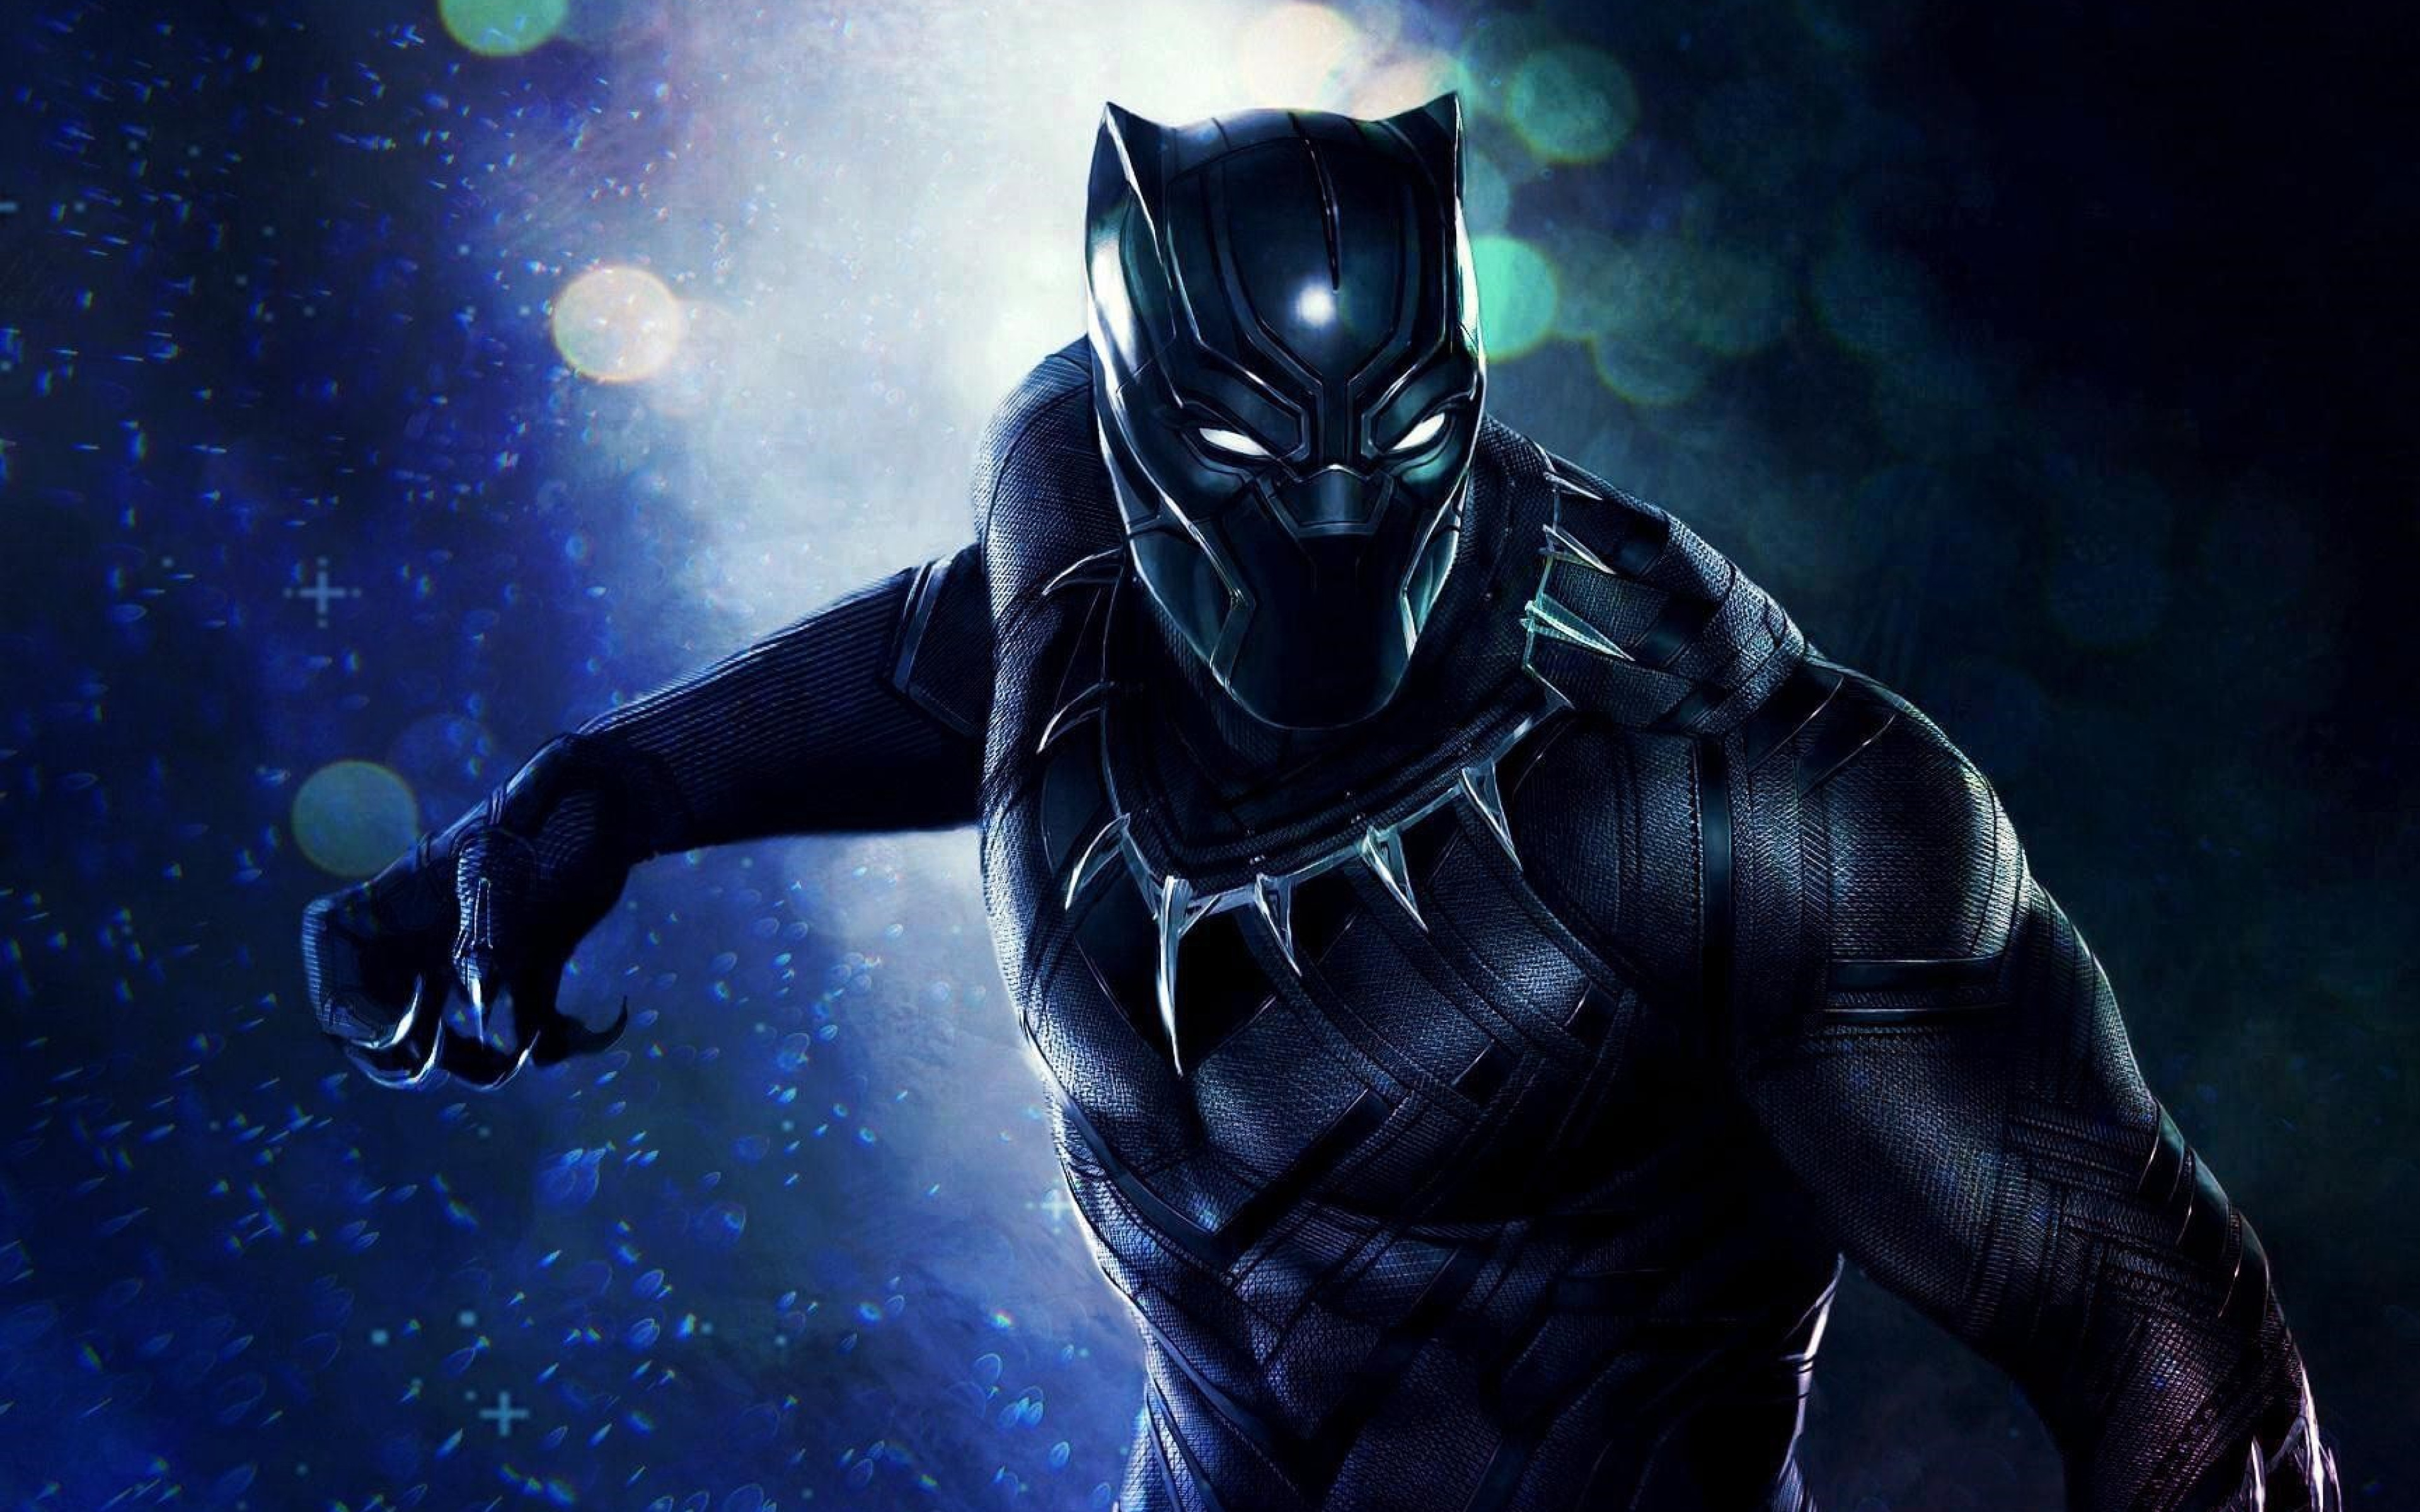 Superhero Black Panther, HD 8K Wallpaper